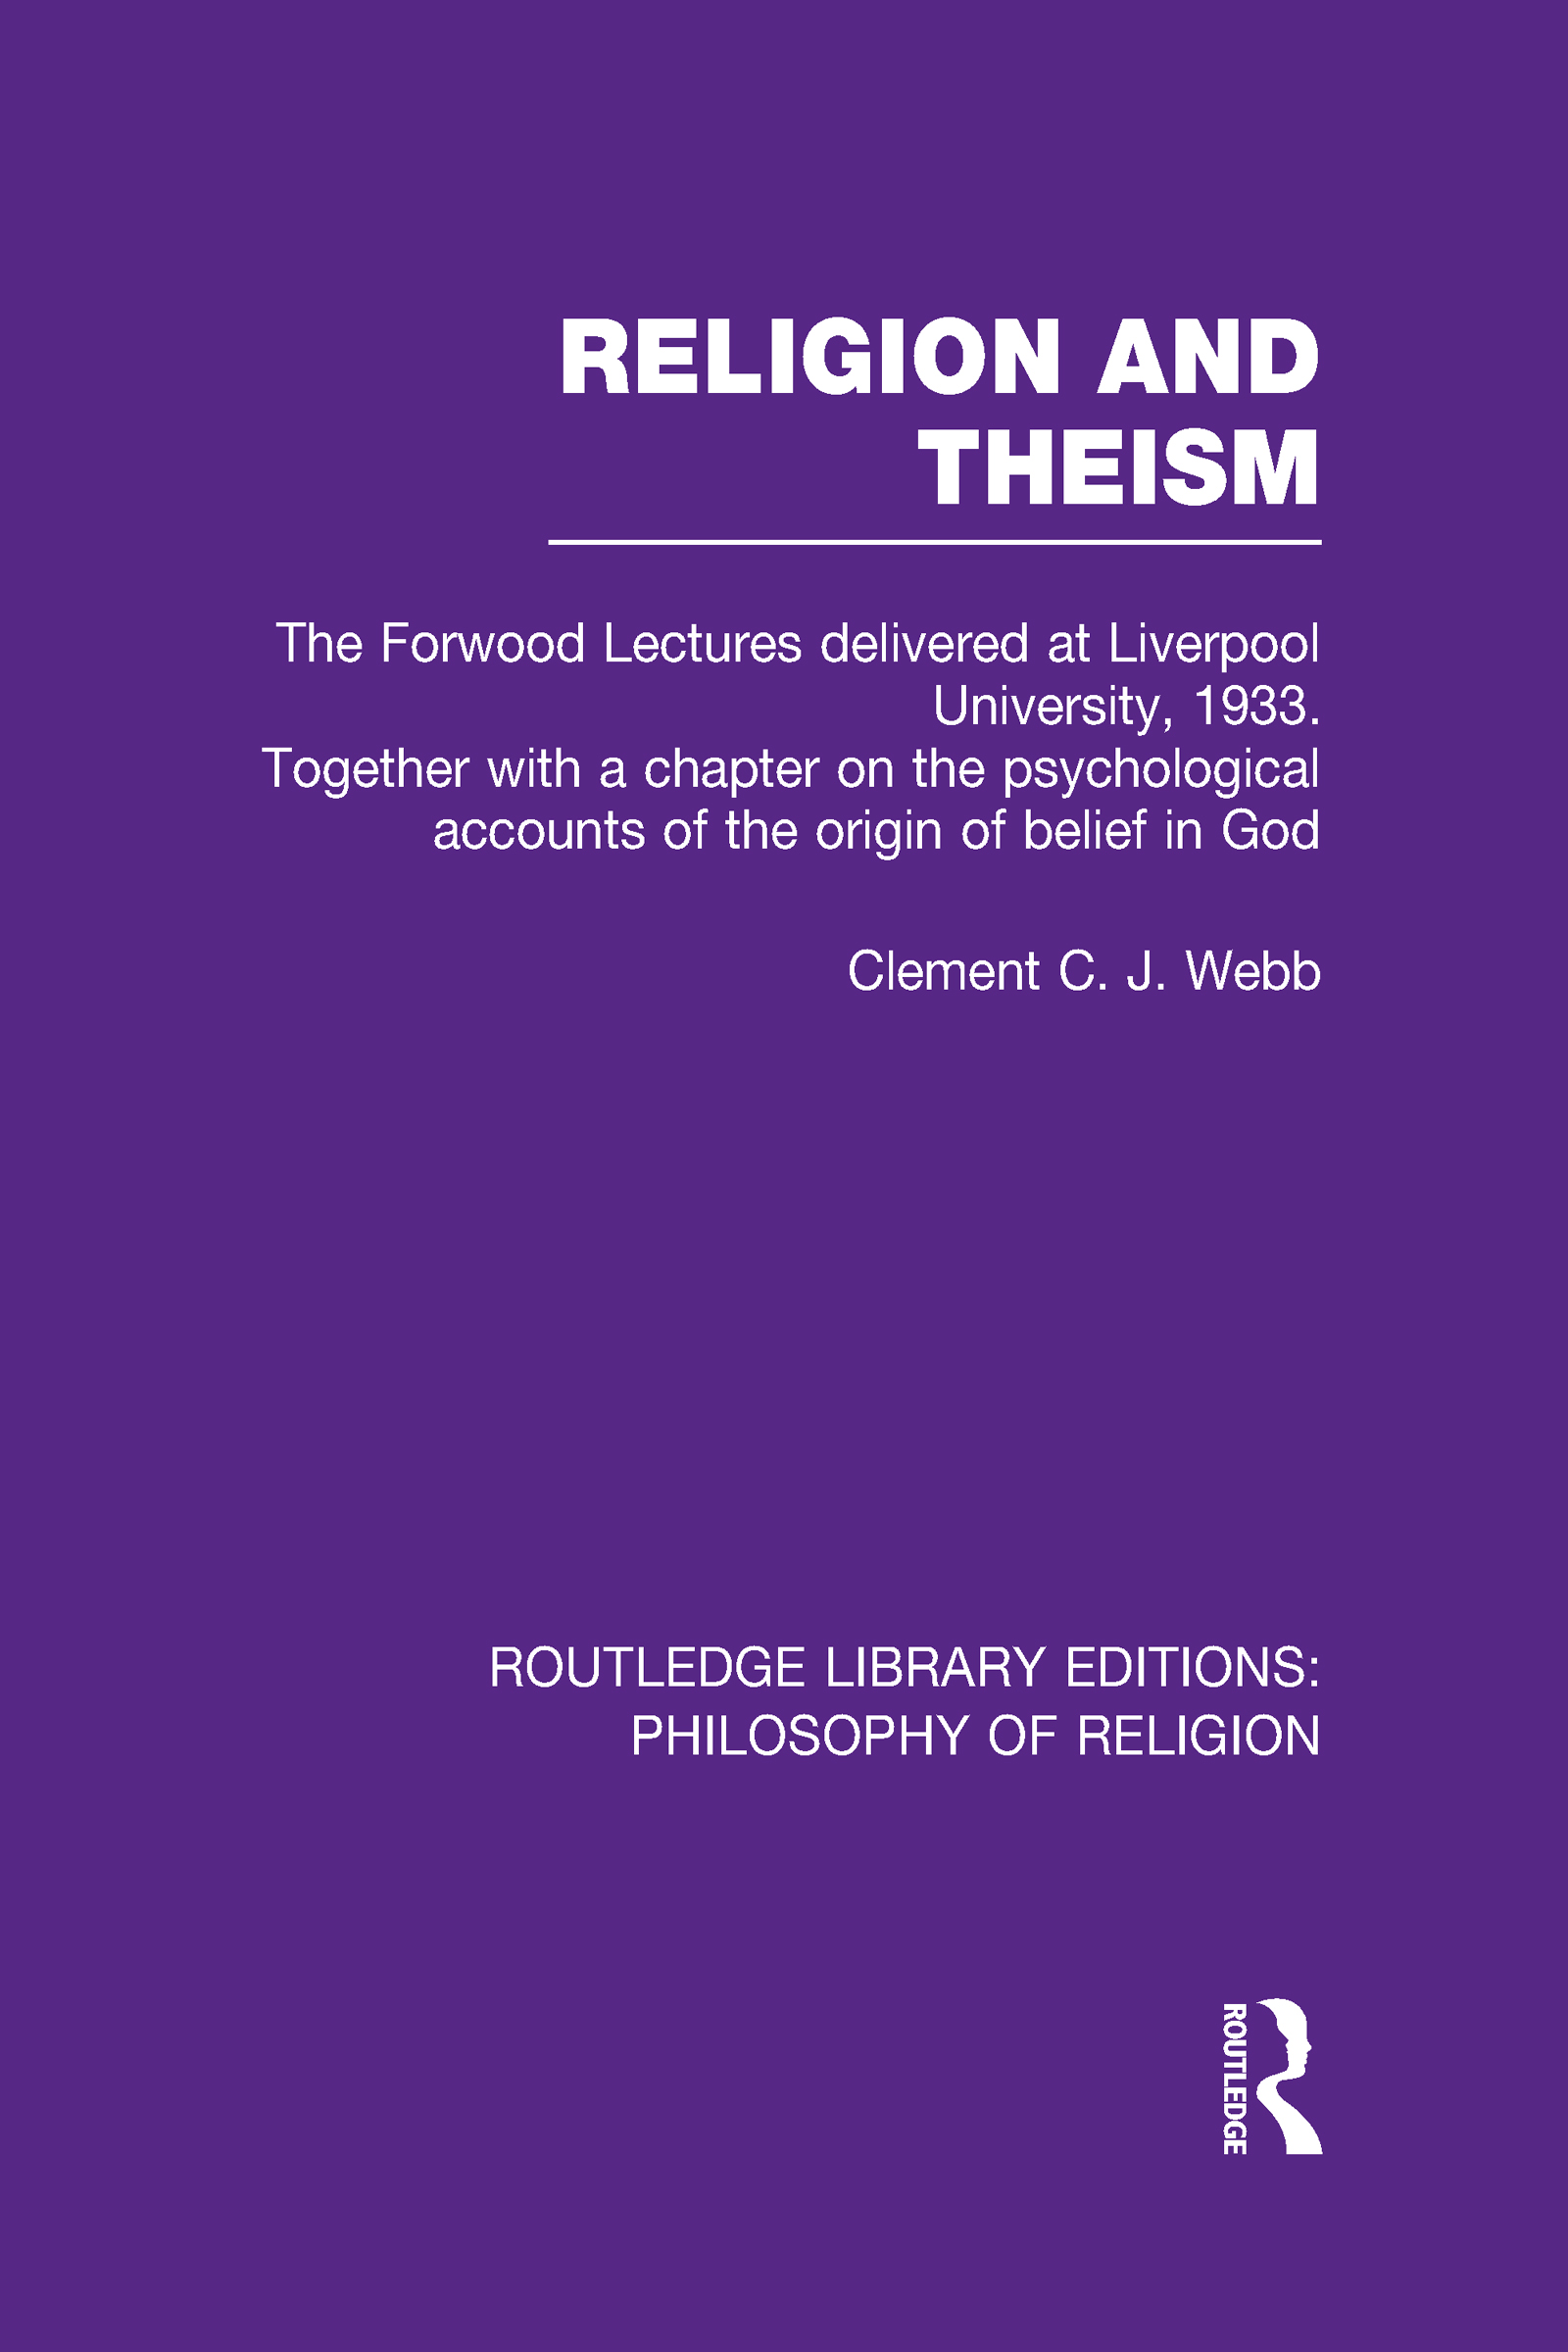 Religion and Theism: The Forwood Lectures Delivered at Liverpool University, 1933. Together with a Chapter on the Psychological Accounts of the Origin of Belief in God (Hardback) book cover